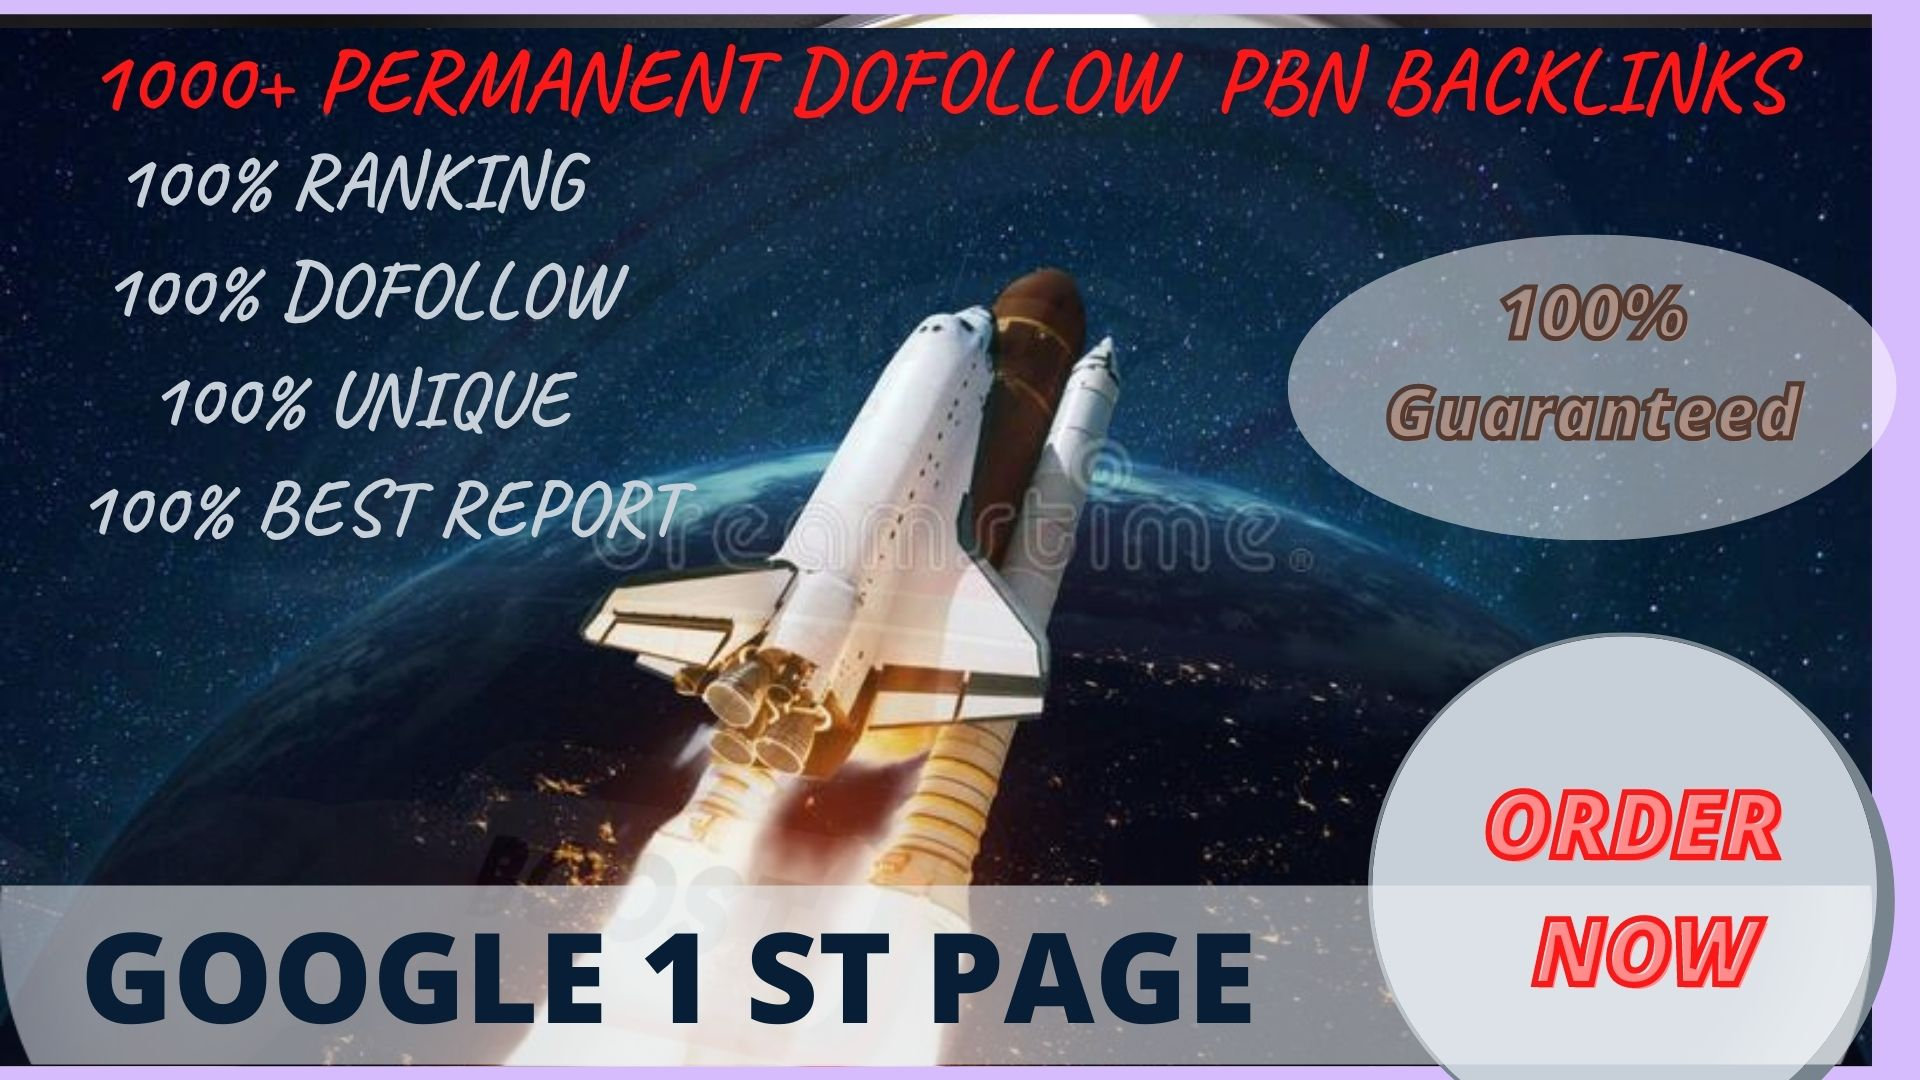 Get 1000+ Permanent Dofollow Homepage pbn Backlinks.Letest update 2021. BUY 1 GET 1 FREE